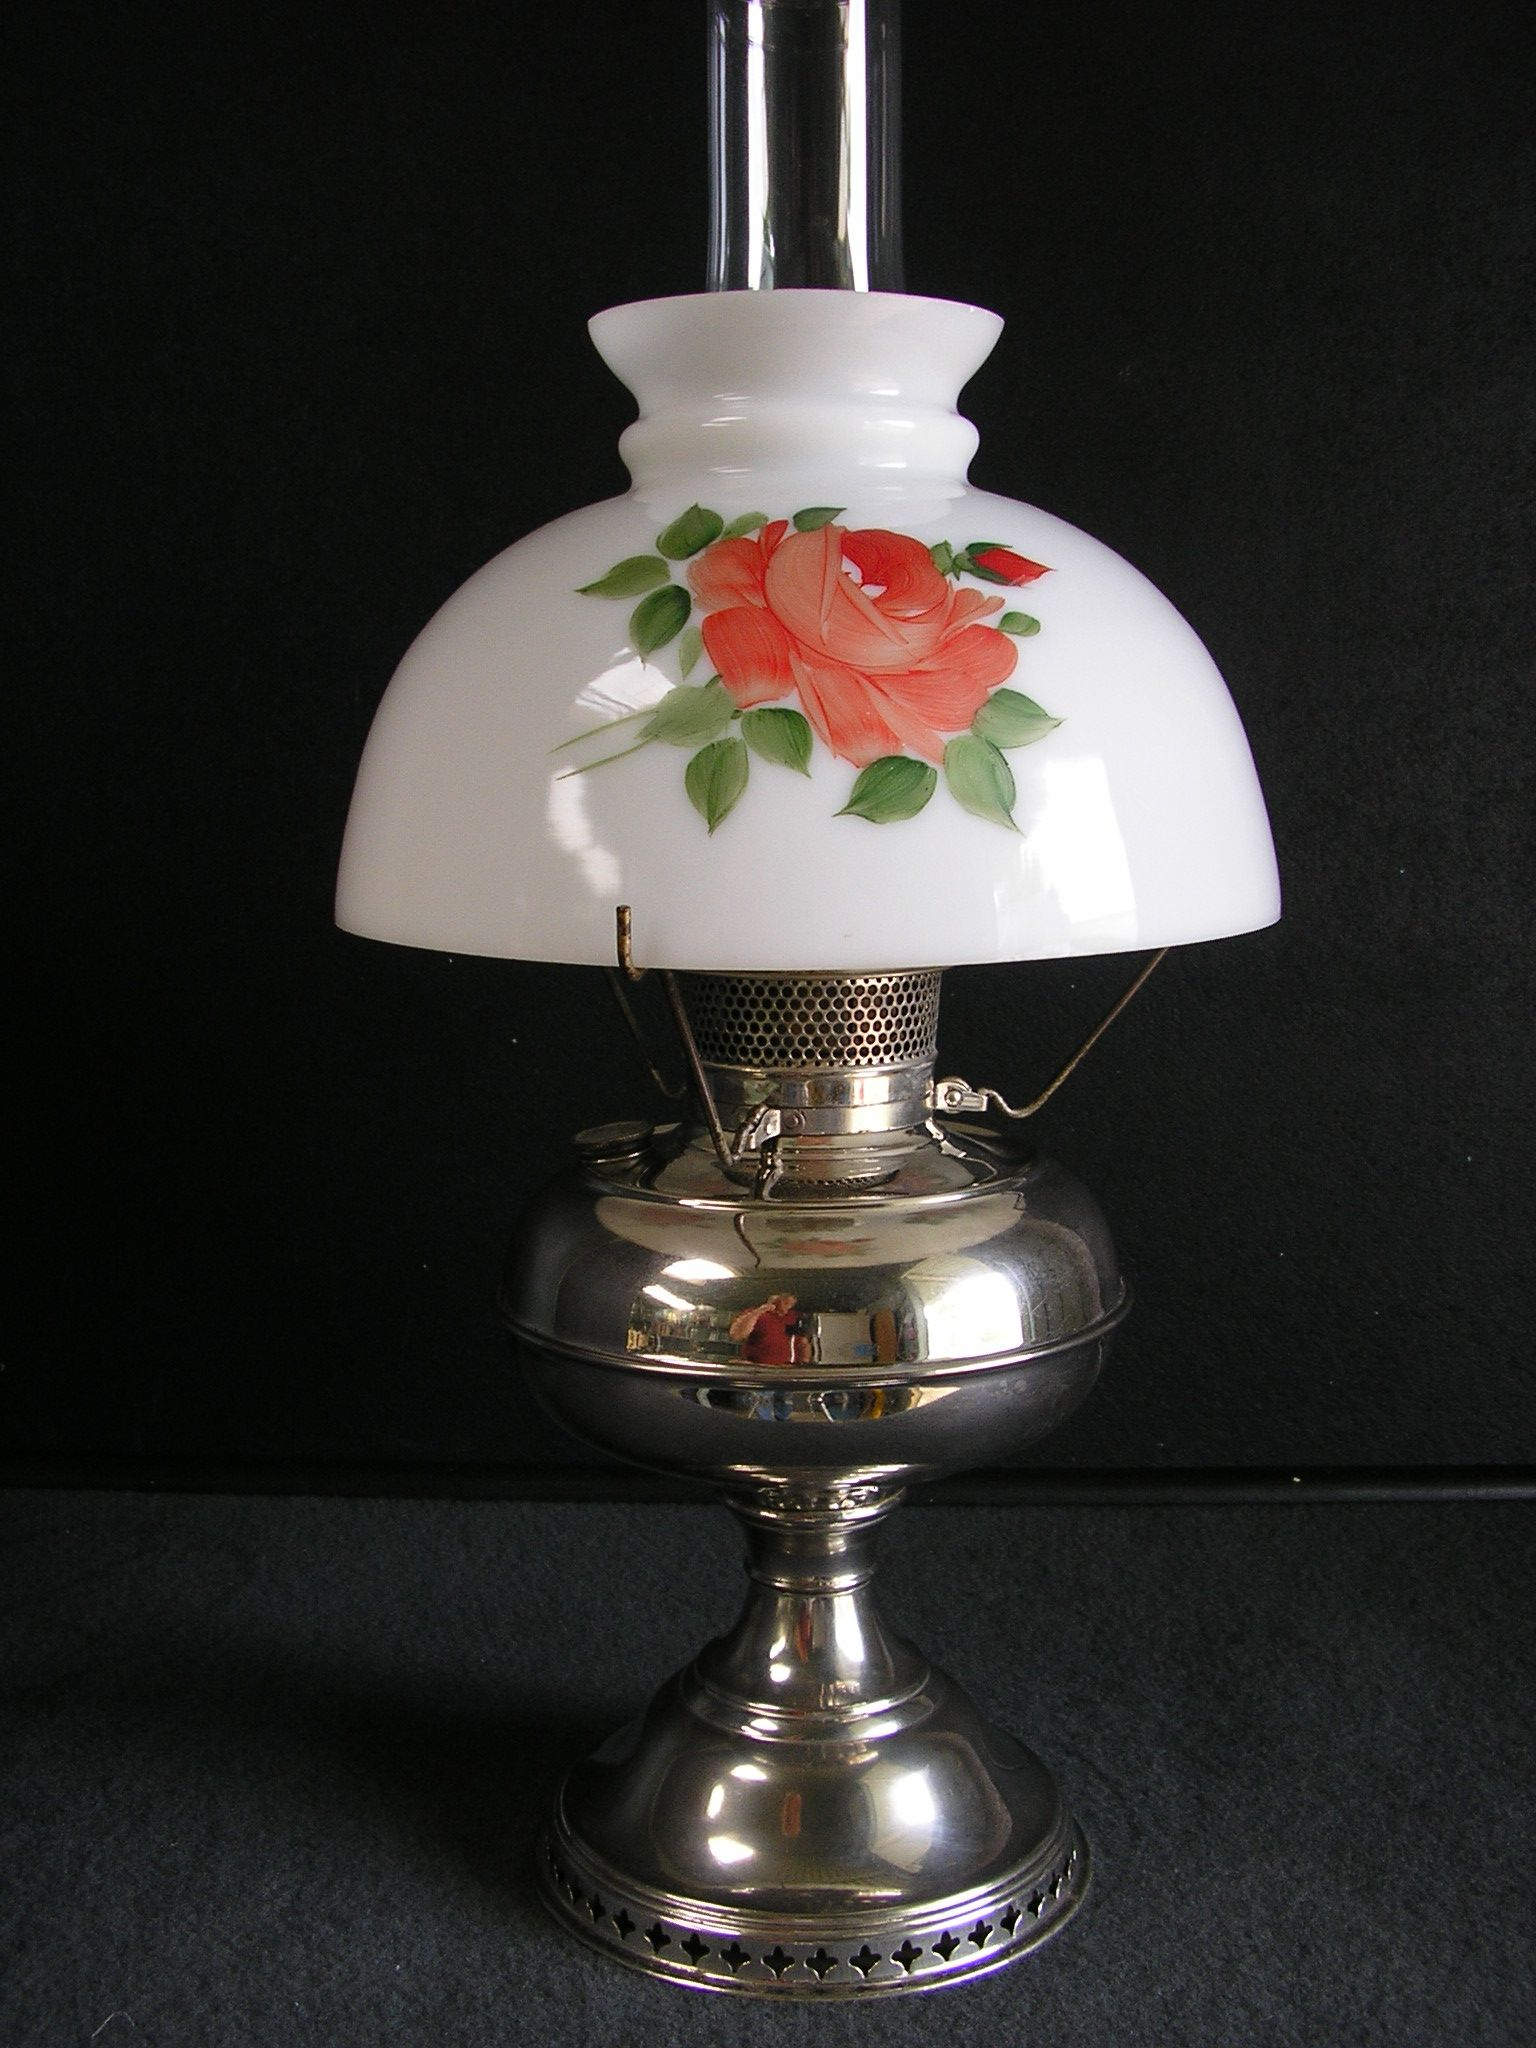 Bradley hubbard b nickel table oil lamp kerosene lamp oil bradley hubbard b nickel table oil lamp kerosene lamp oil lamp antiques mozeypictures Image collections